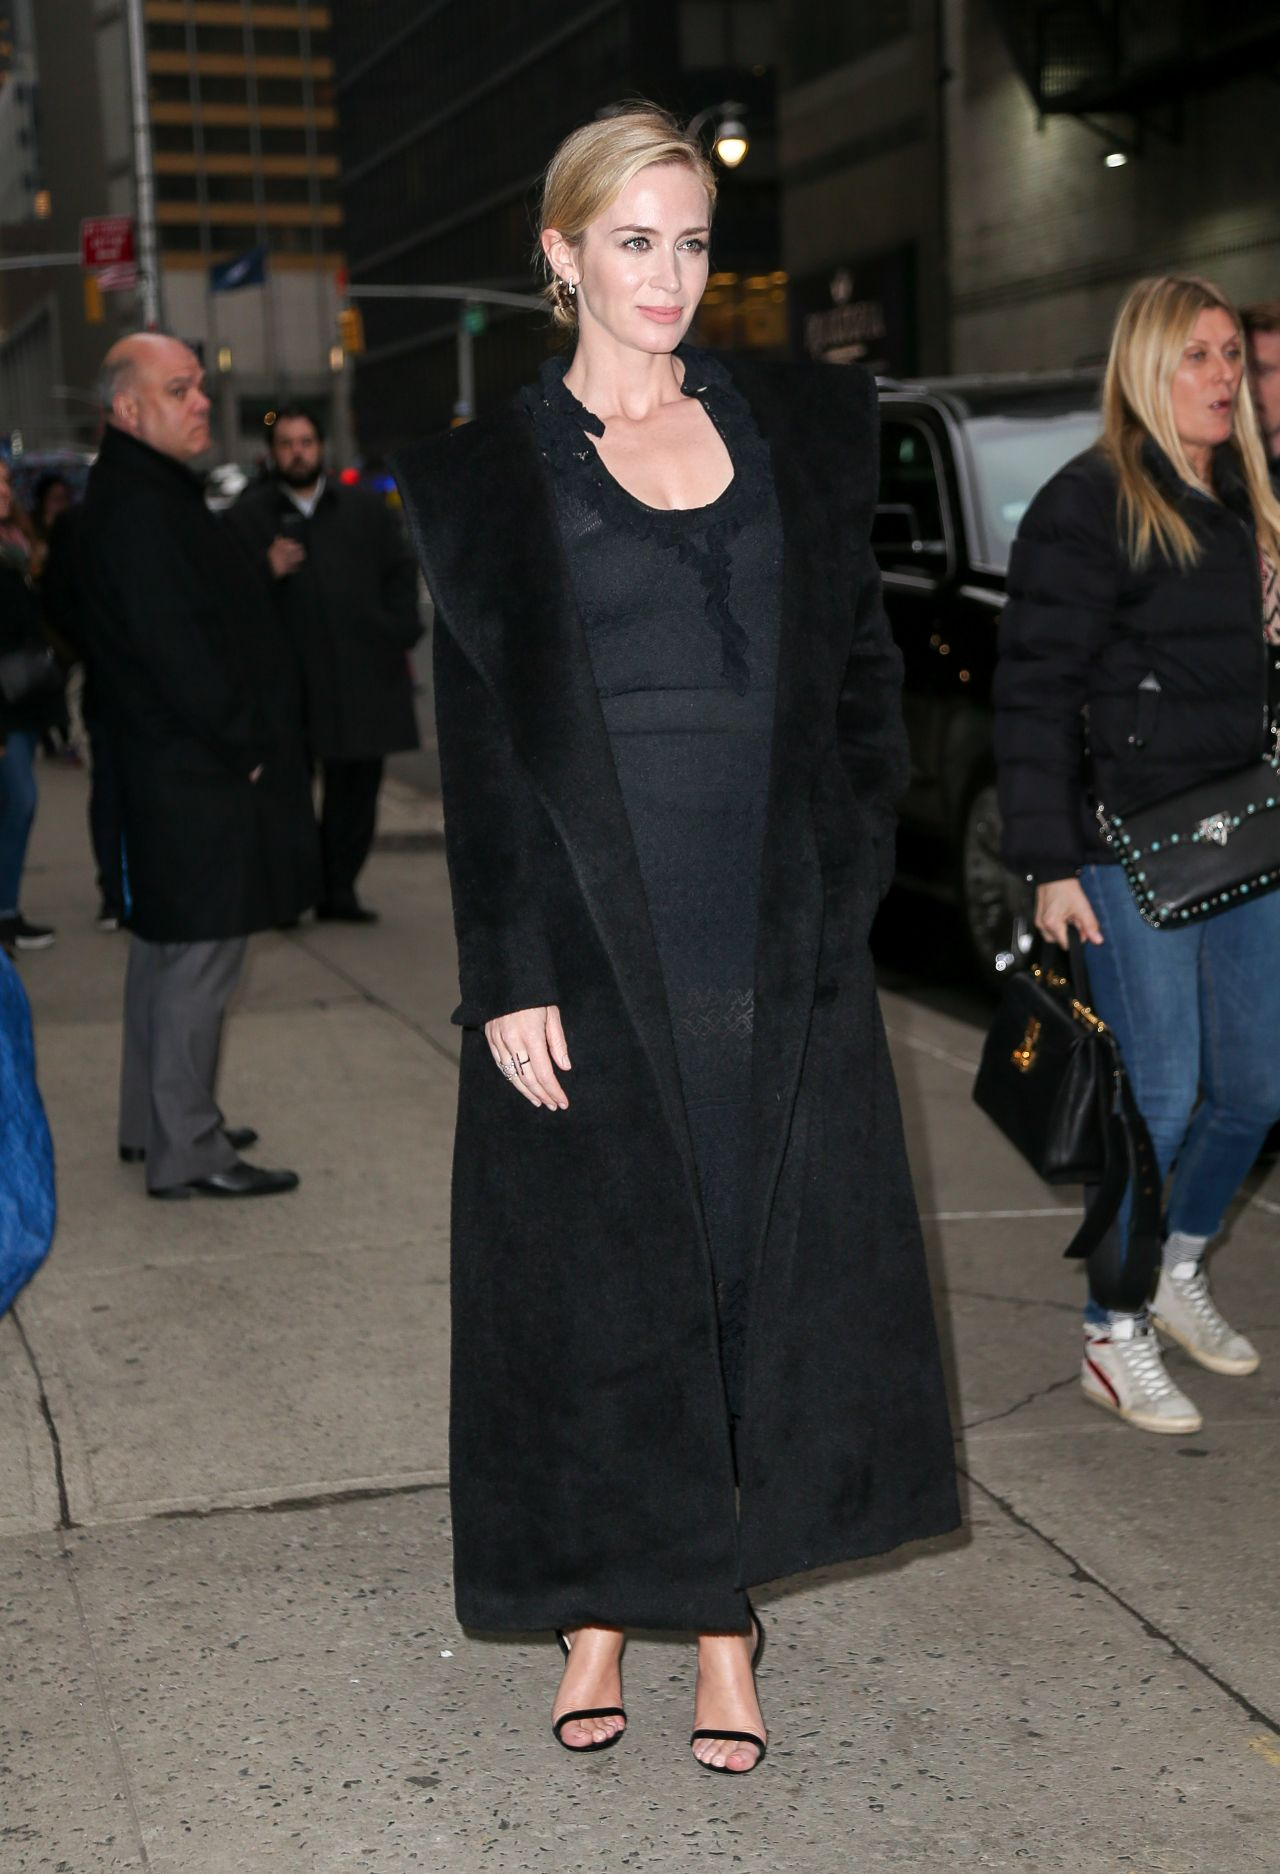 emily-blunt-outside-the-late-show-with-stephen-colbert-in-nyc-03-29-2018-5.jpg